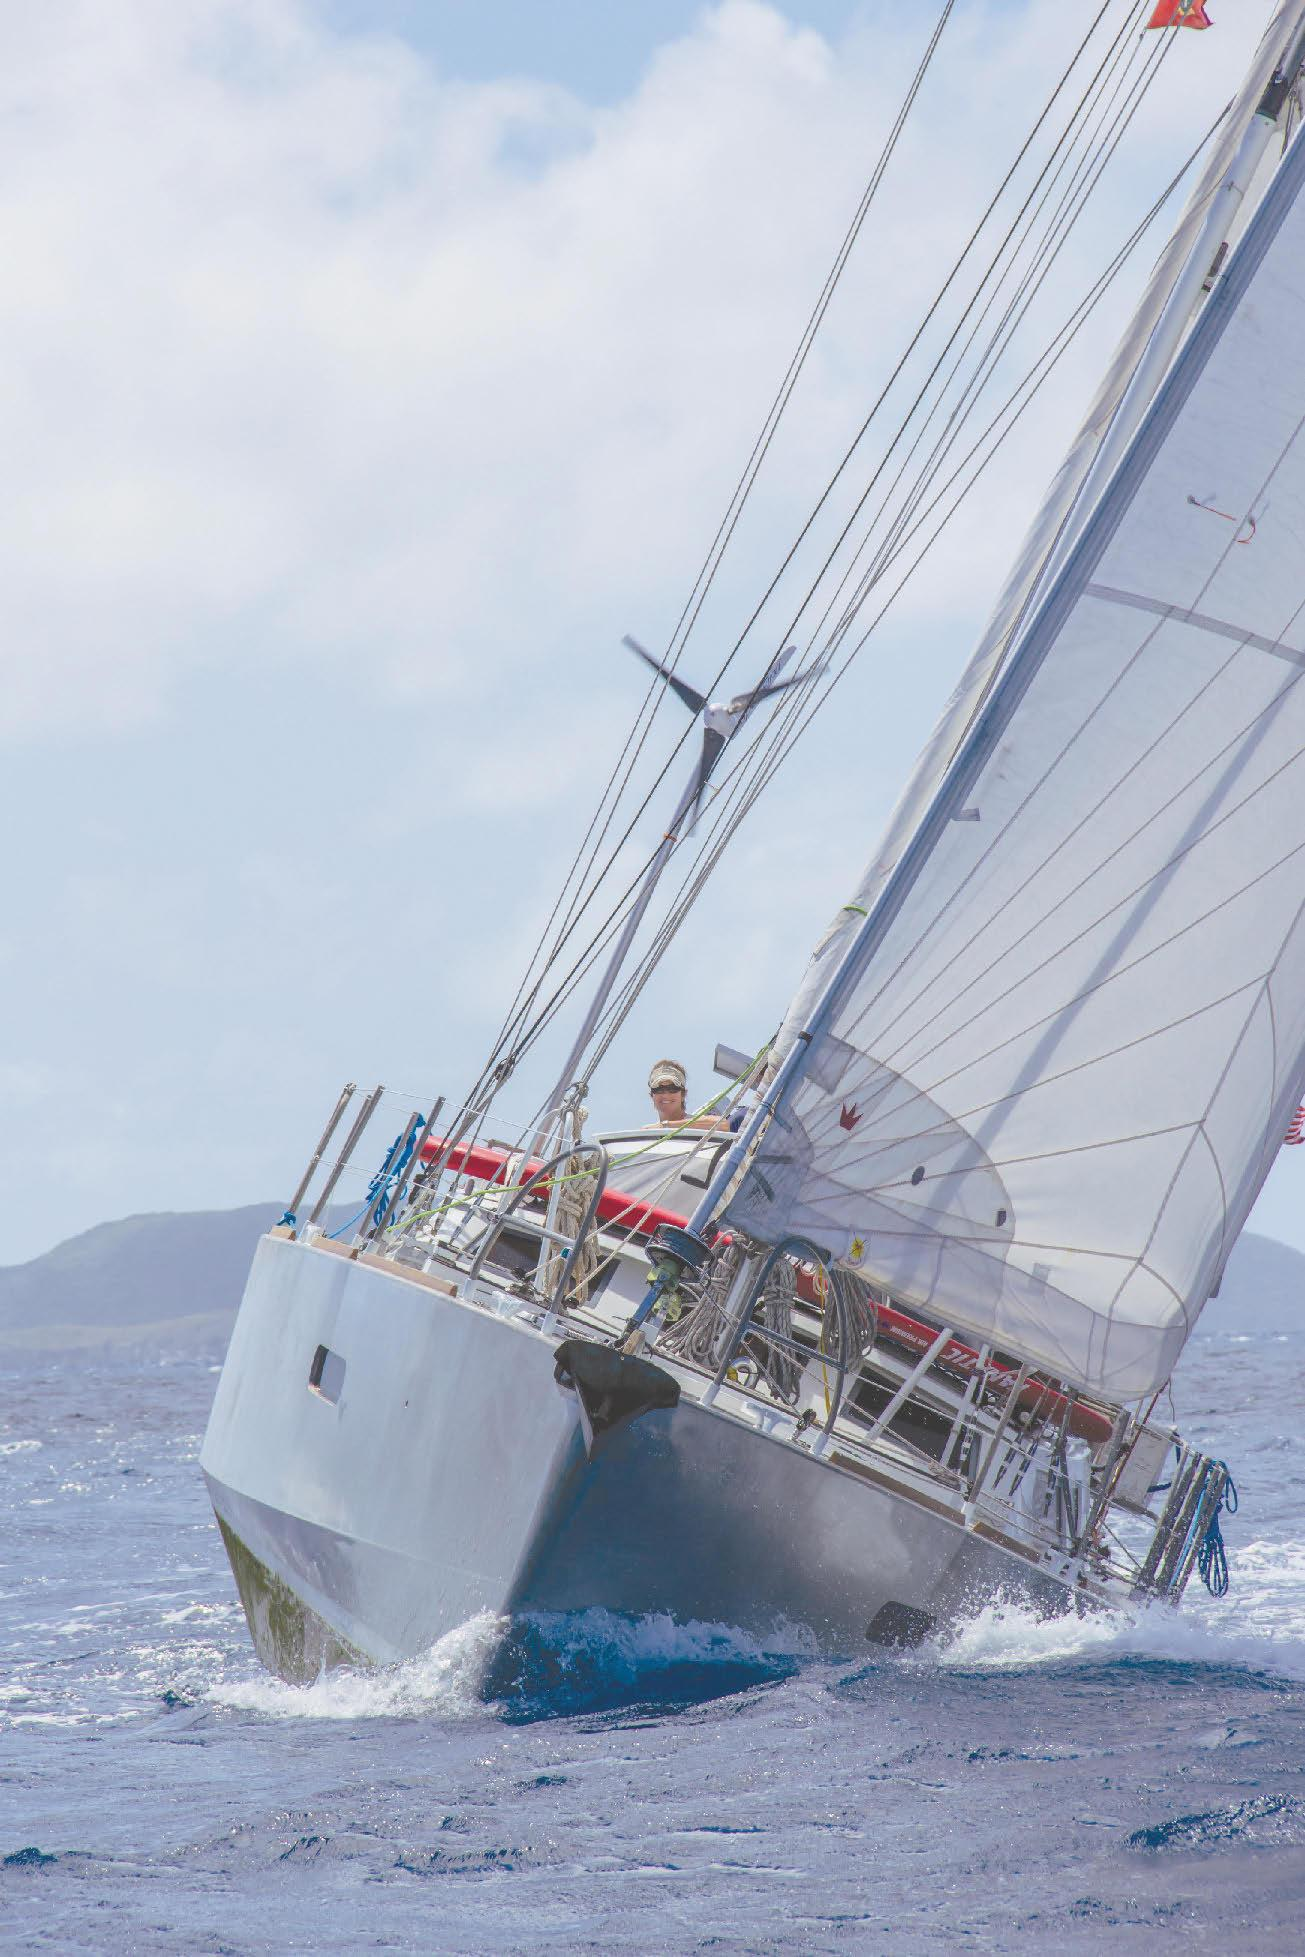 Page 6 of Easter Island to Cape Horn and South Georgia, Falklands to Norway and More: A Family's Three-Year, 36,000-Nautical Mile Adventure